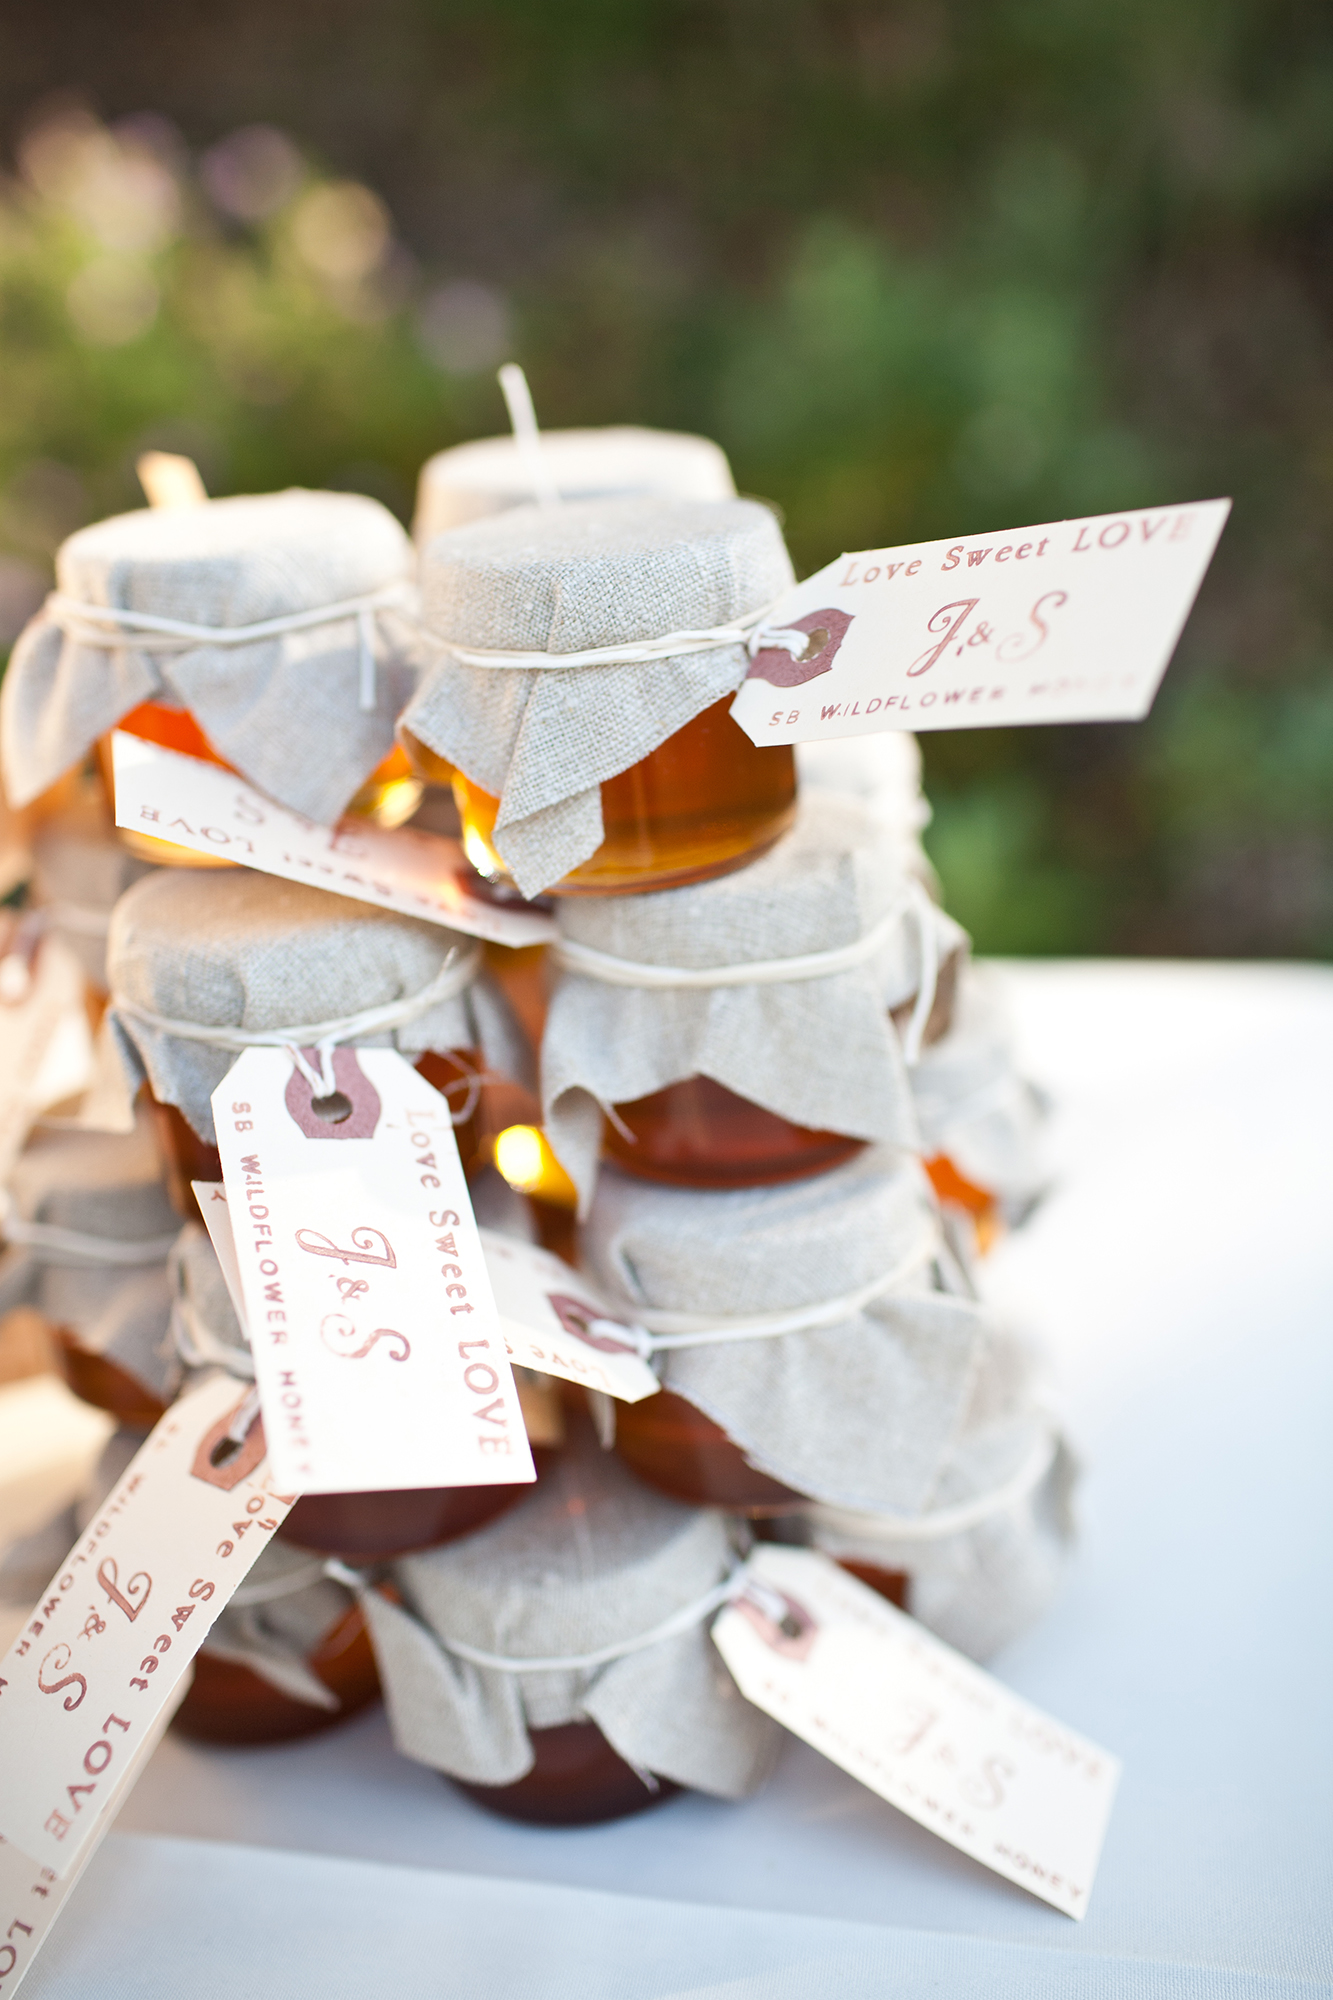 Dainty jars of honey, like these ones from Savanah Bee Company, can be topped with monogram-printed tags for a rustic wedding.